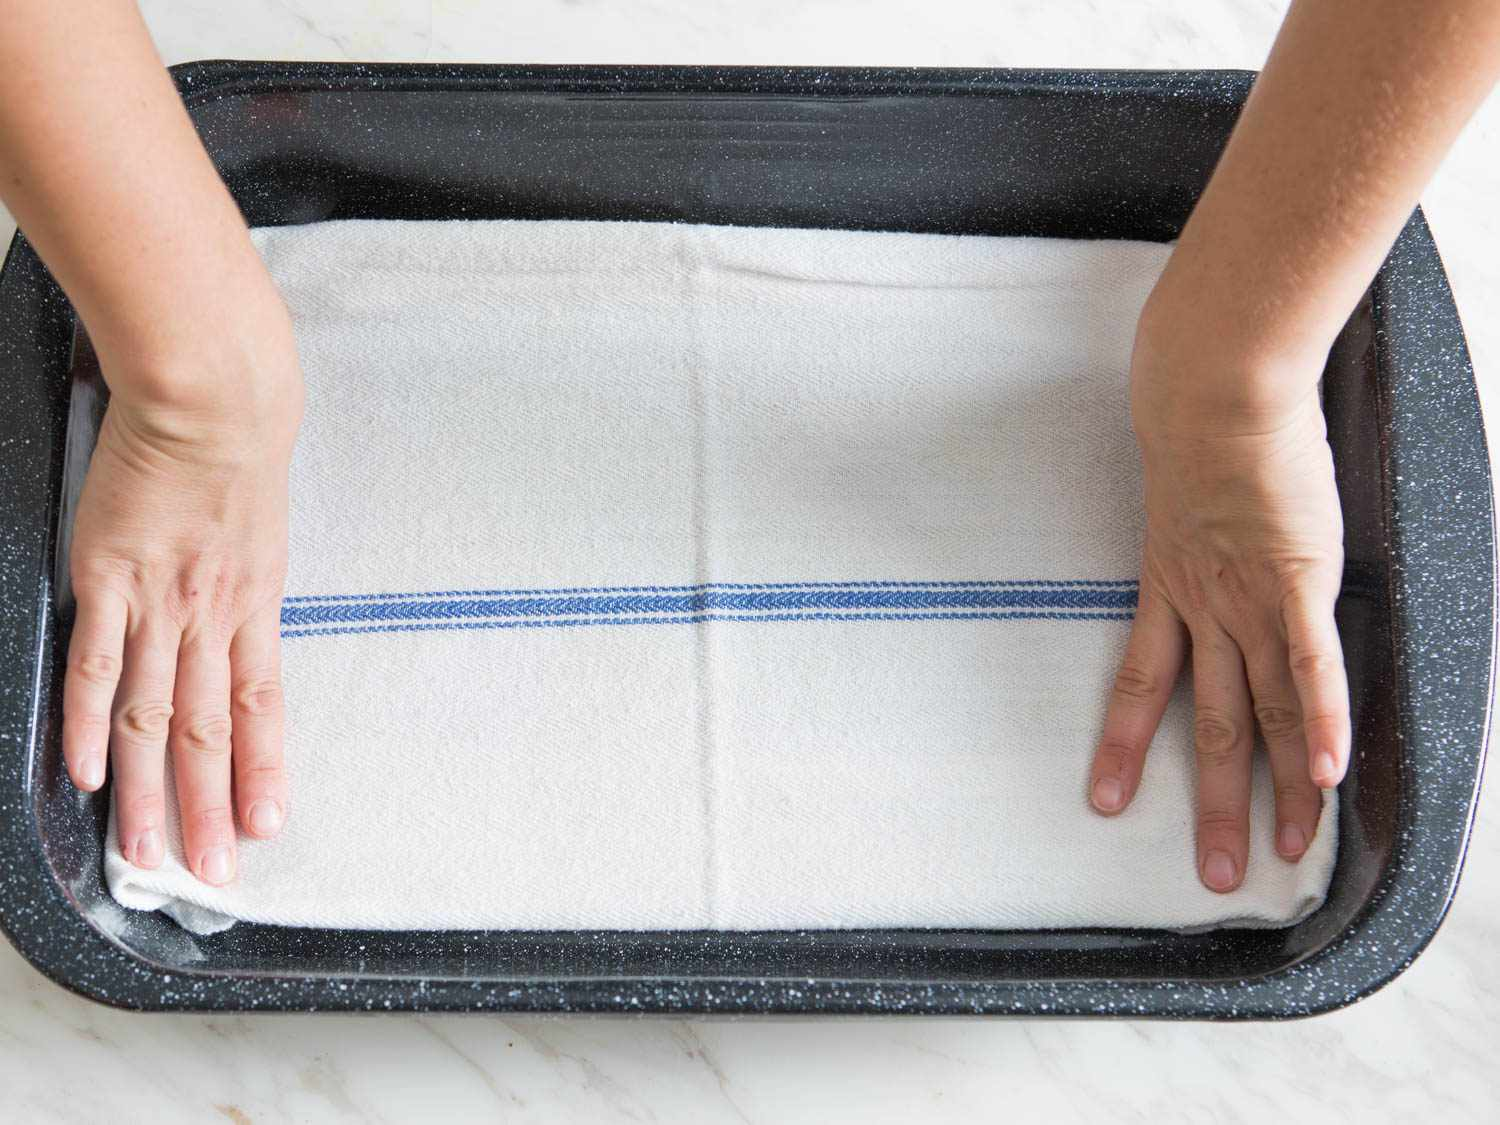 A blue and white cotton towel being placed into the bottom of a roasting pan